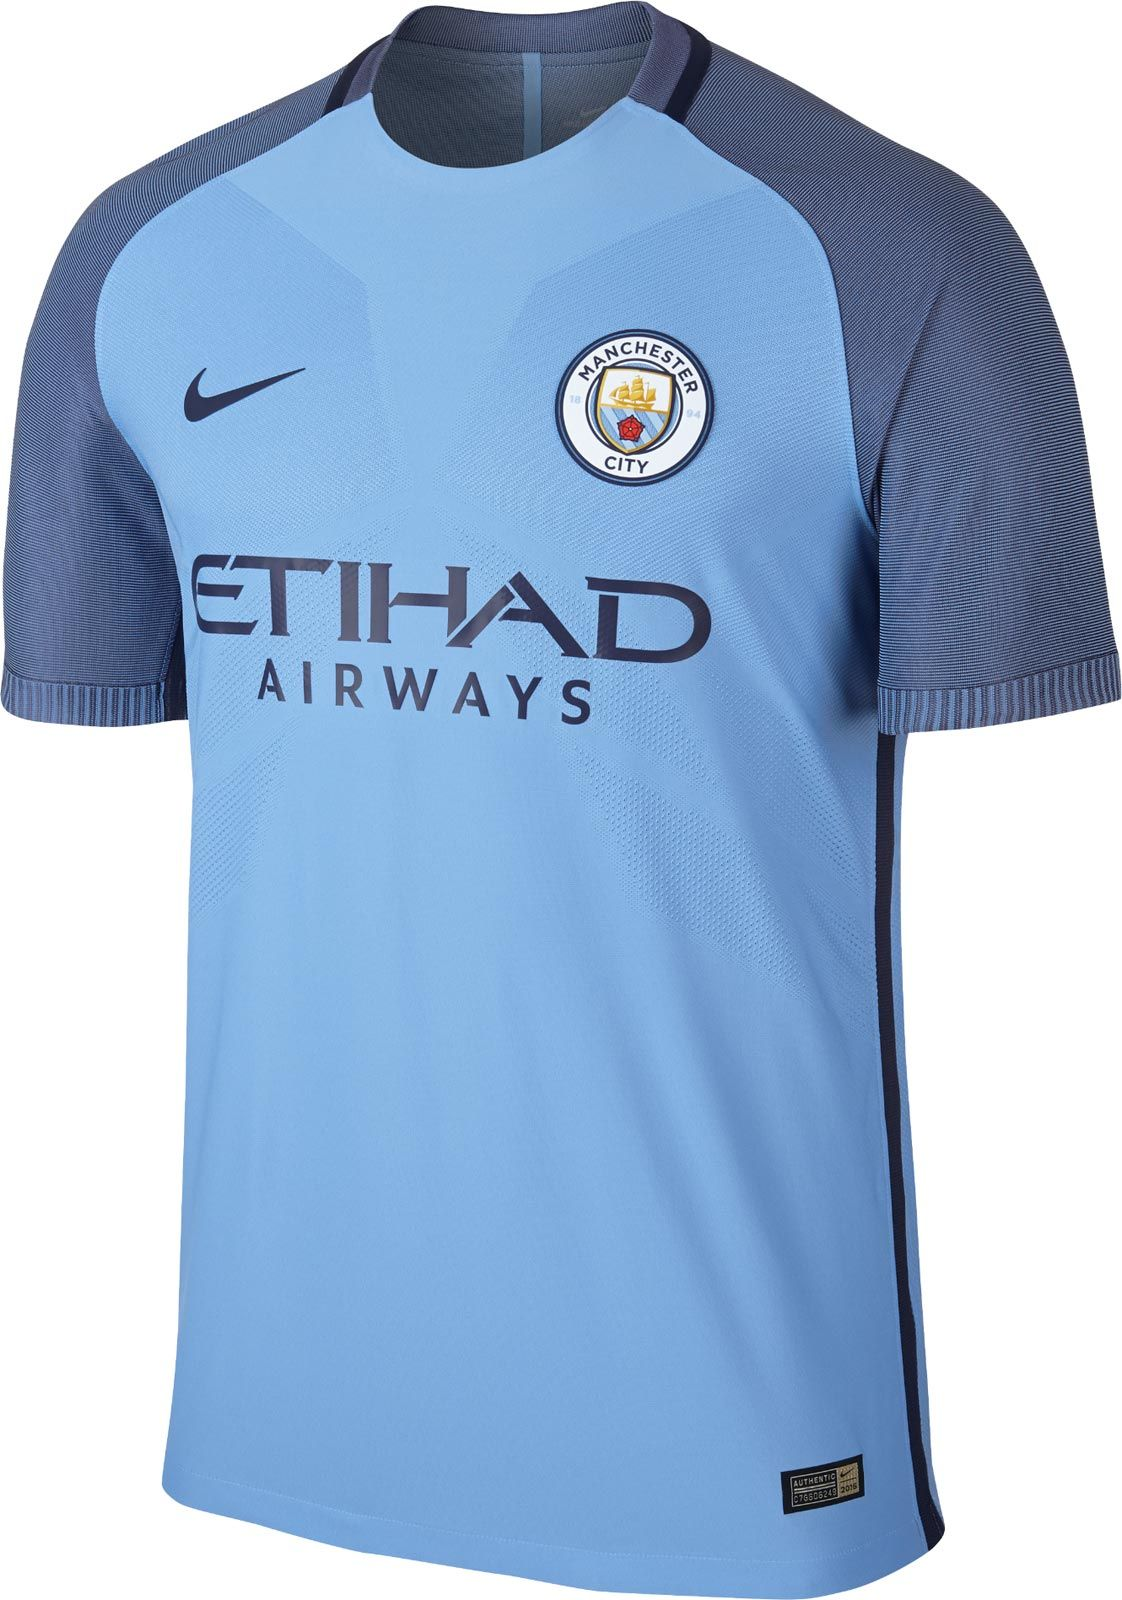 Manchester City s 16-17 home kit boasts the new club logo in a modern  design 4d24ed4bc